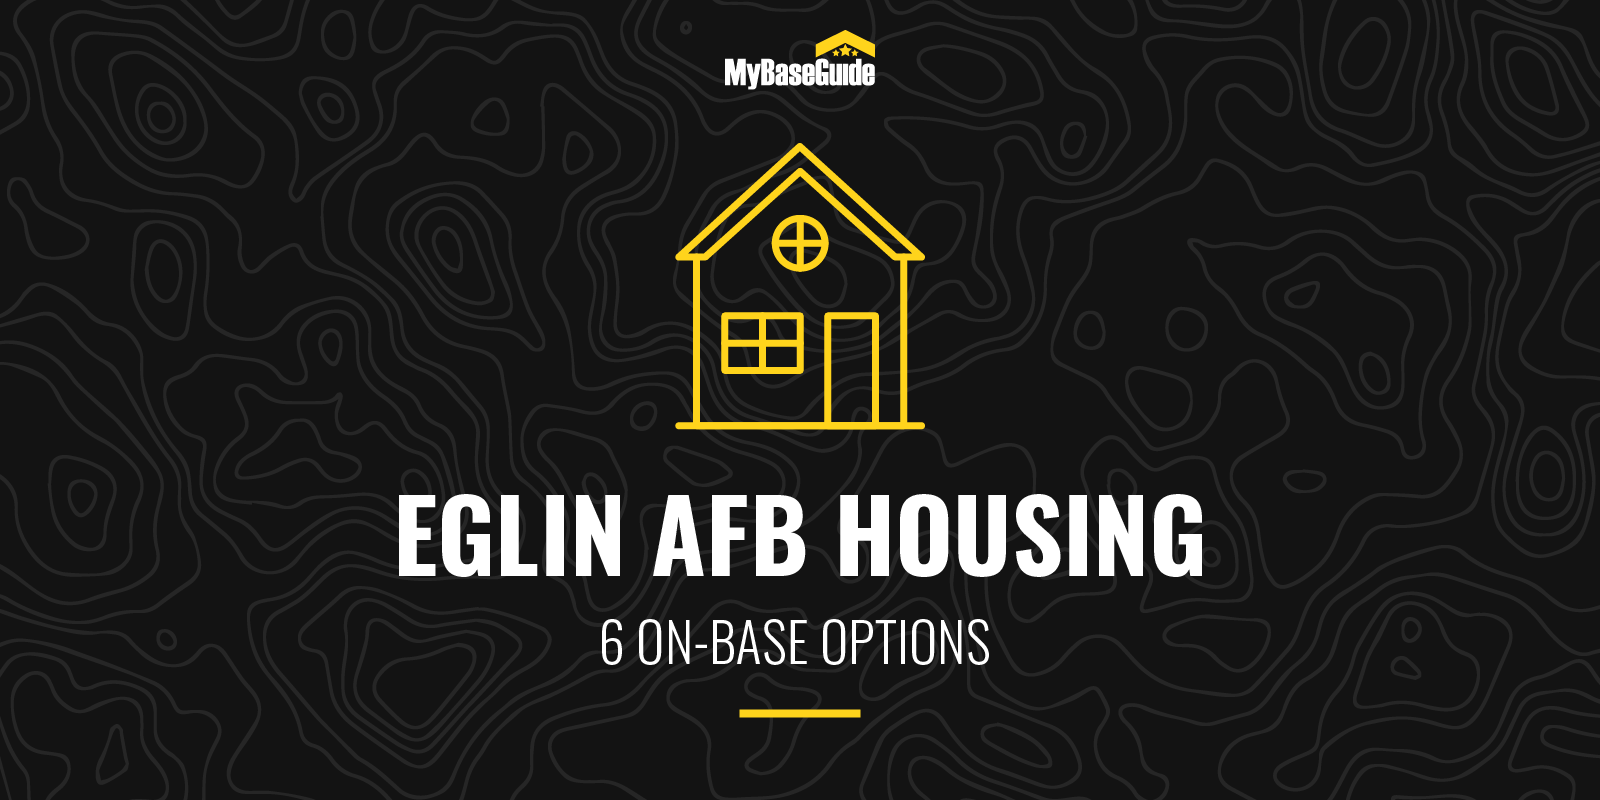 Eglin AFB Housing: 6 On-Base Options